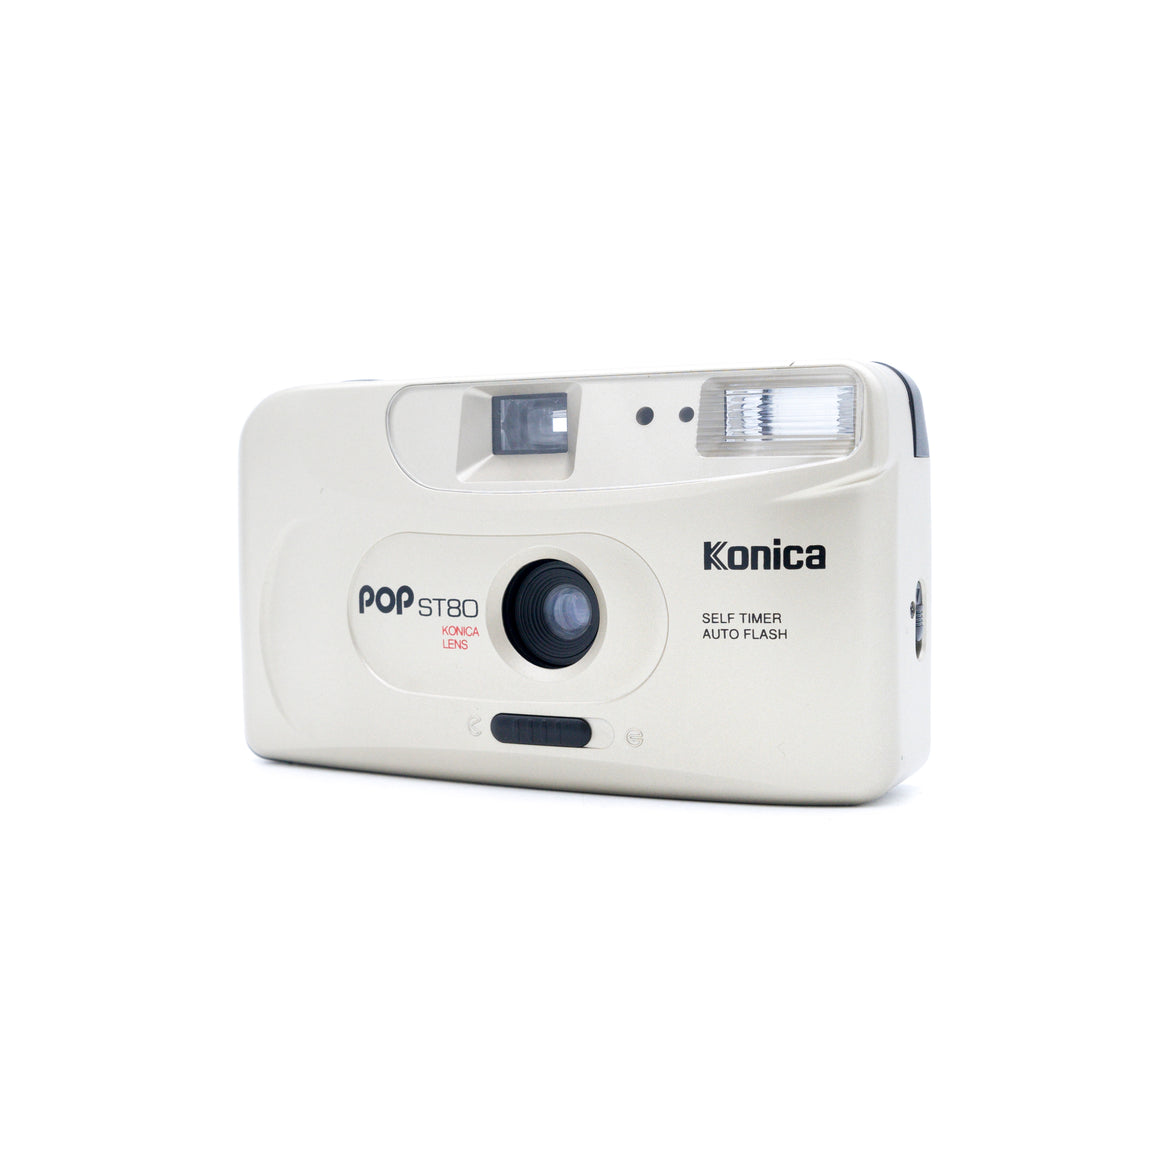 Konica POP ST80 35mm Point and Shoot Camera Auto Flash gold in BOX